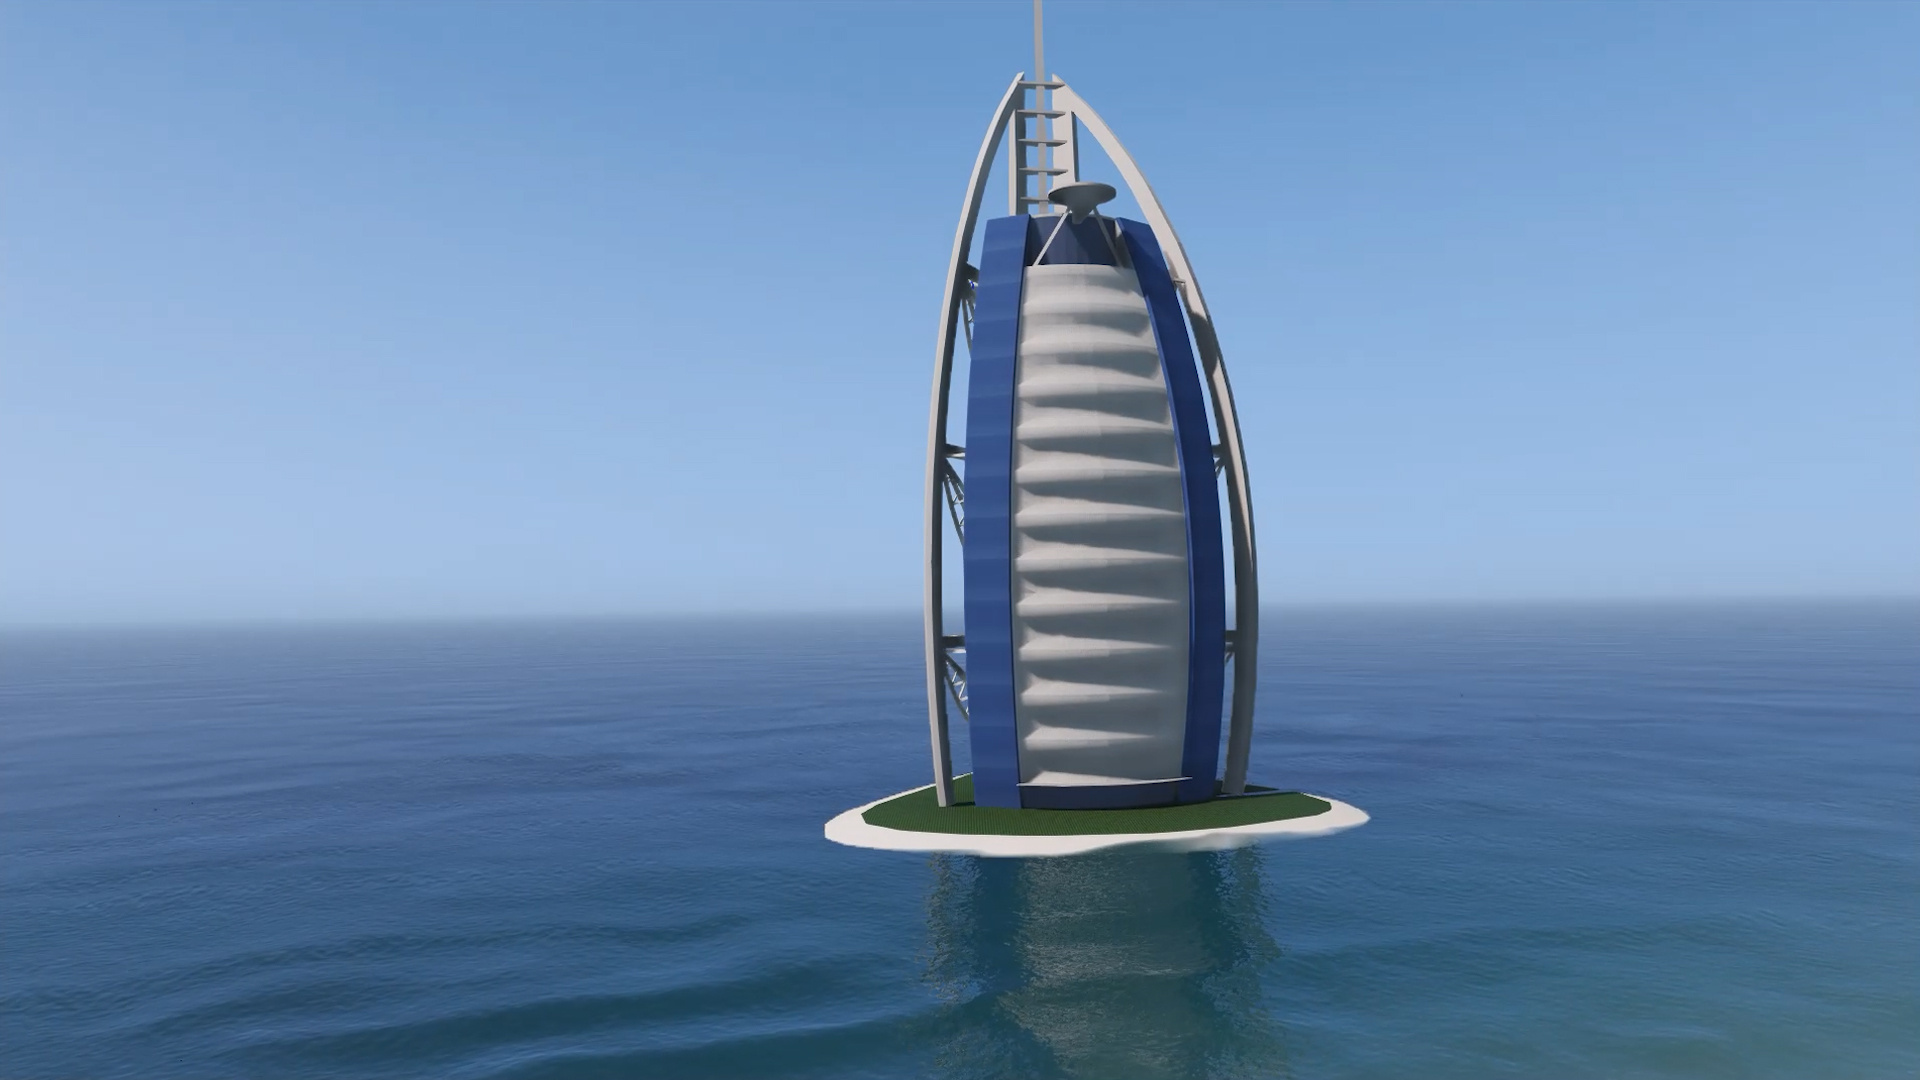 Burj al arab hotel dubai emissive add on replace for Al burj dubai